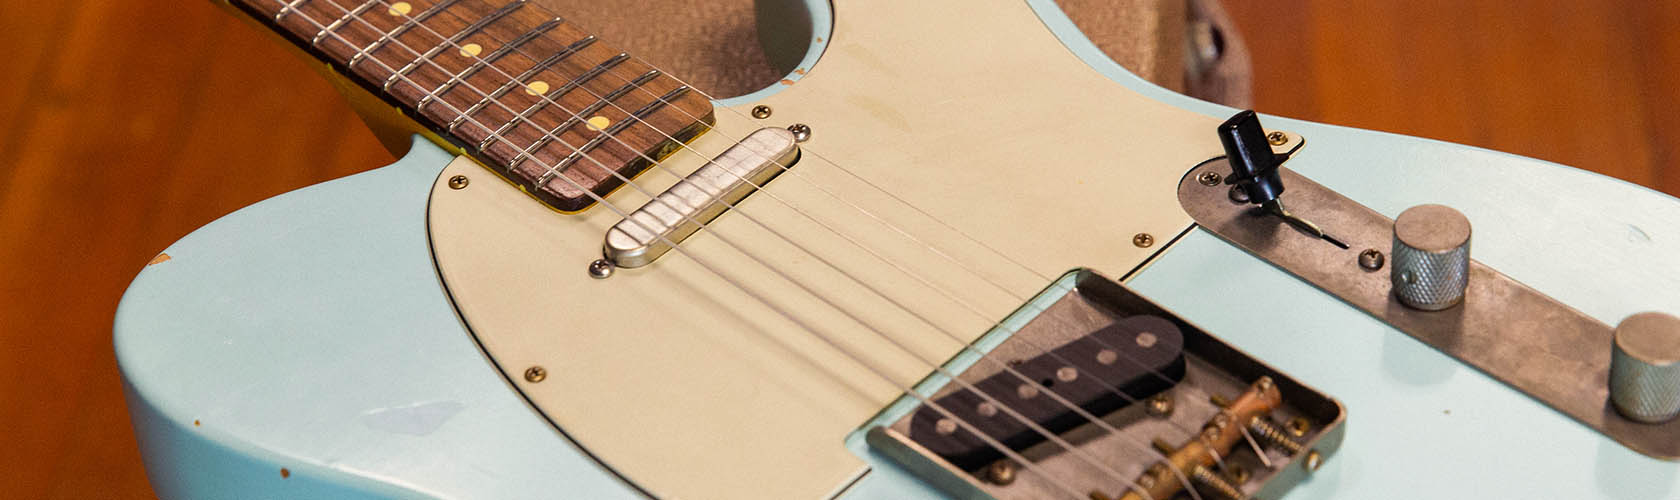 hight resolution of telecaster pickups